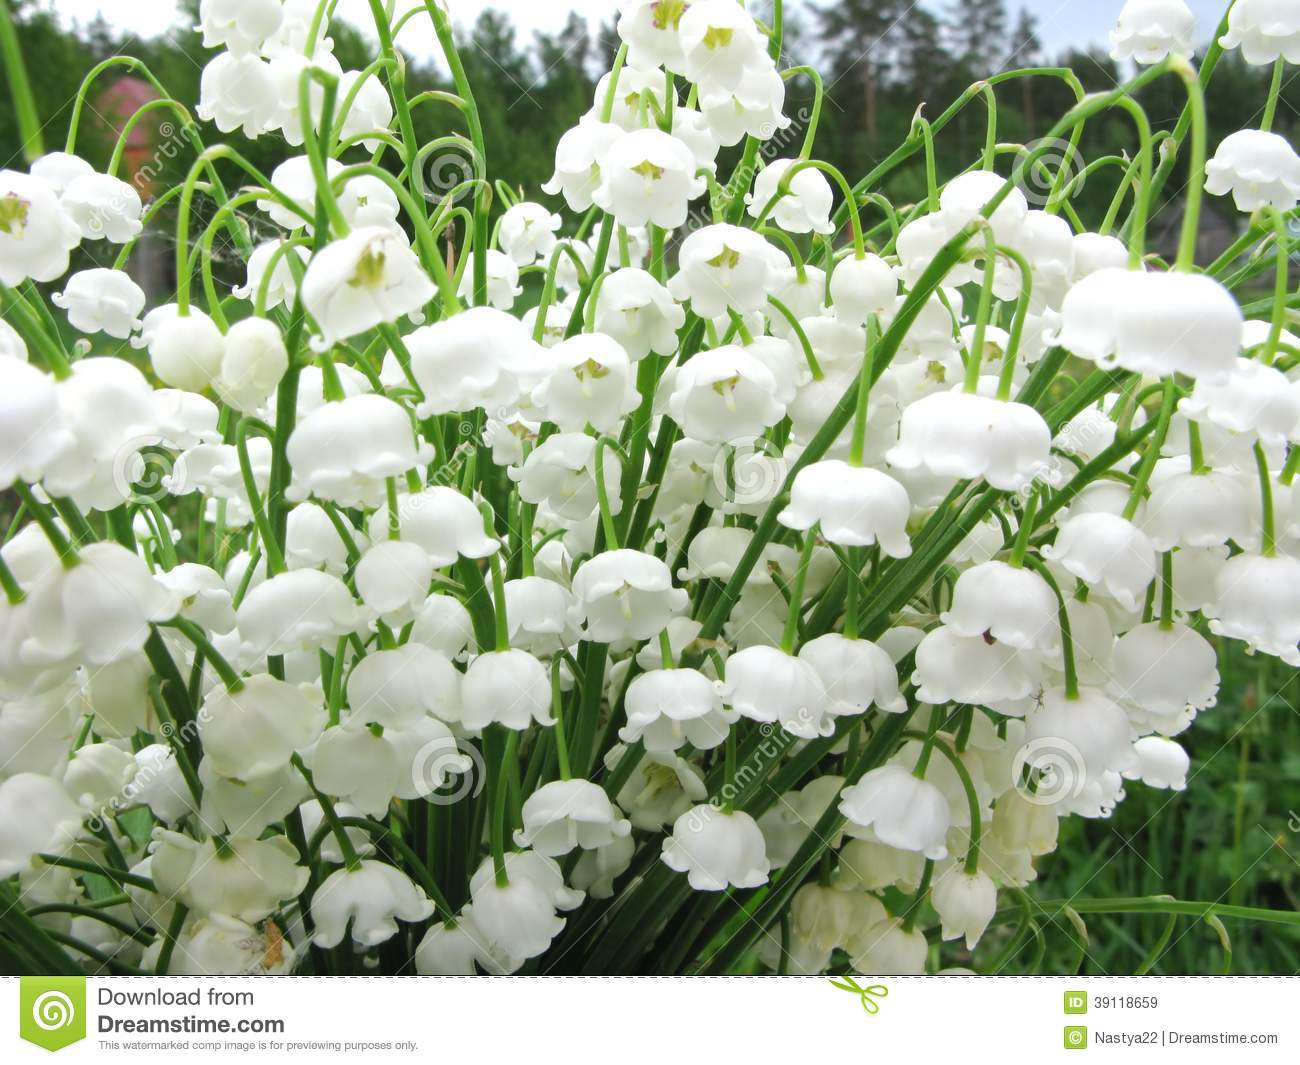 Bouquet des fleurs du muguet image stock image 39118659 - Bouquet de muguet photo ...